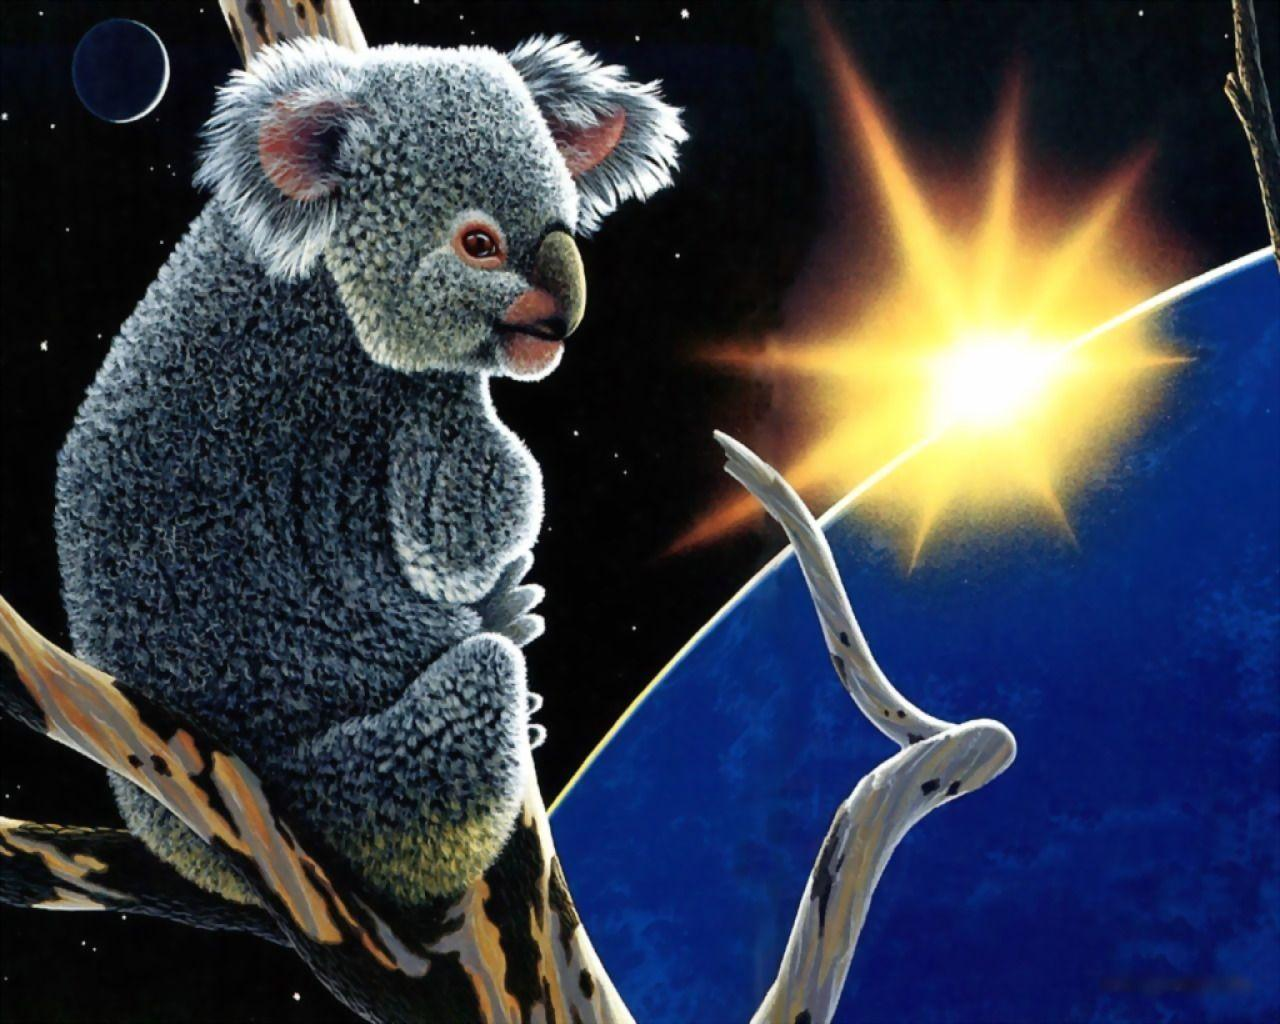 Koala wallpaper Wallpapers - HD Wallpapers 3134